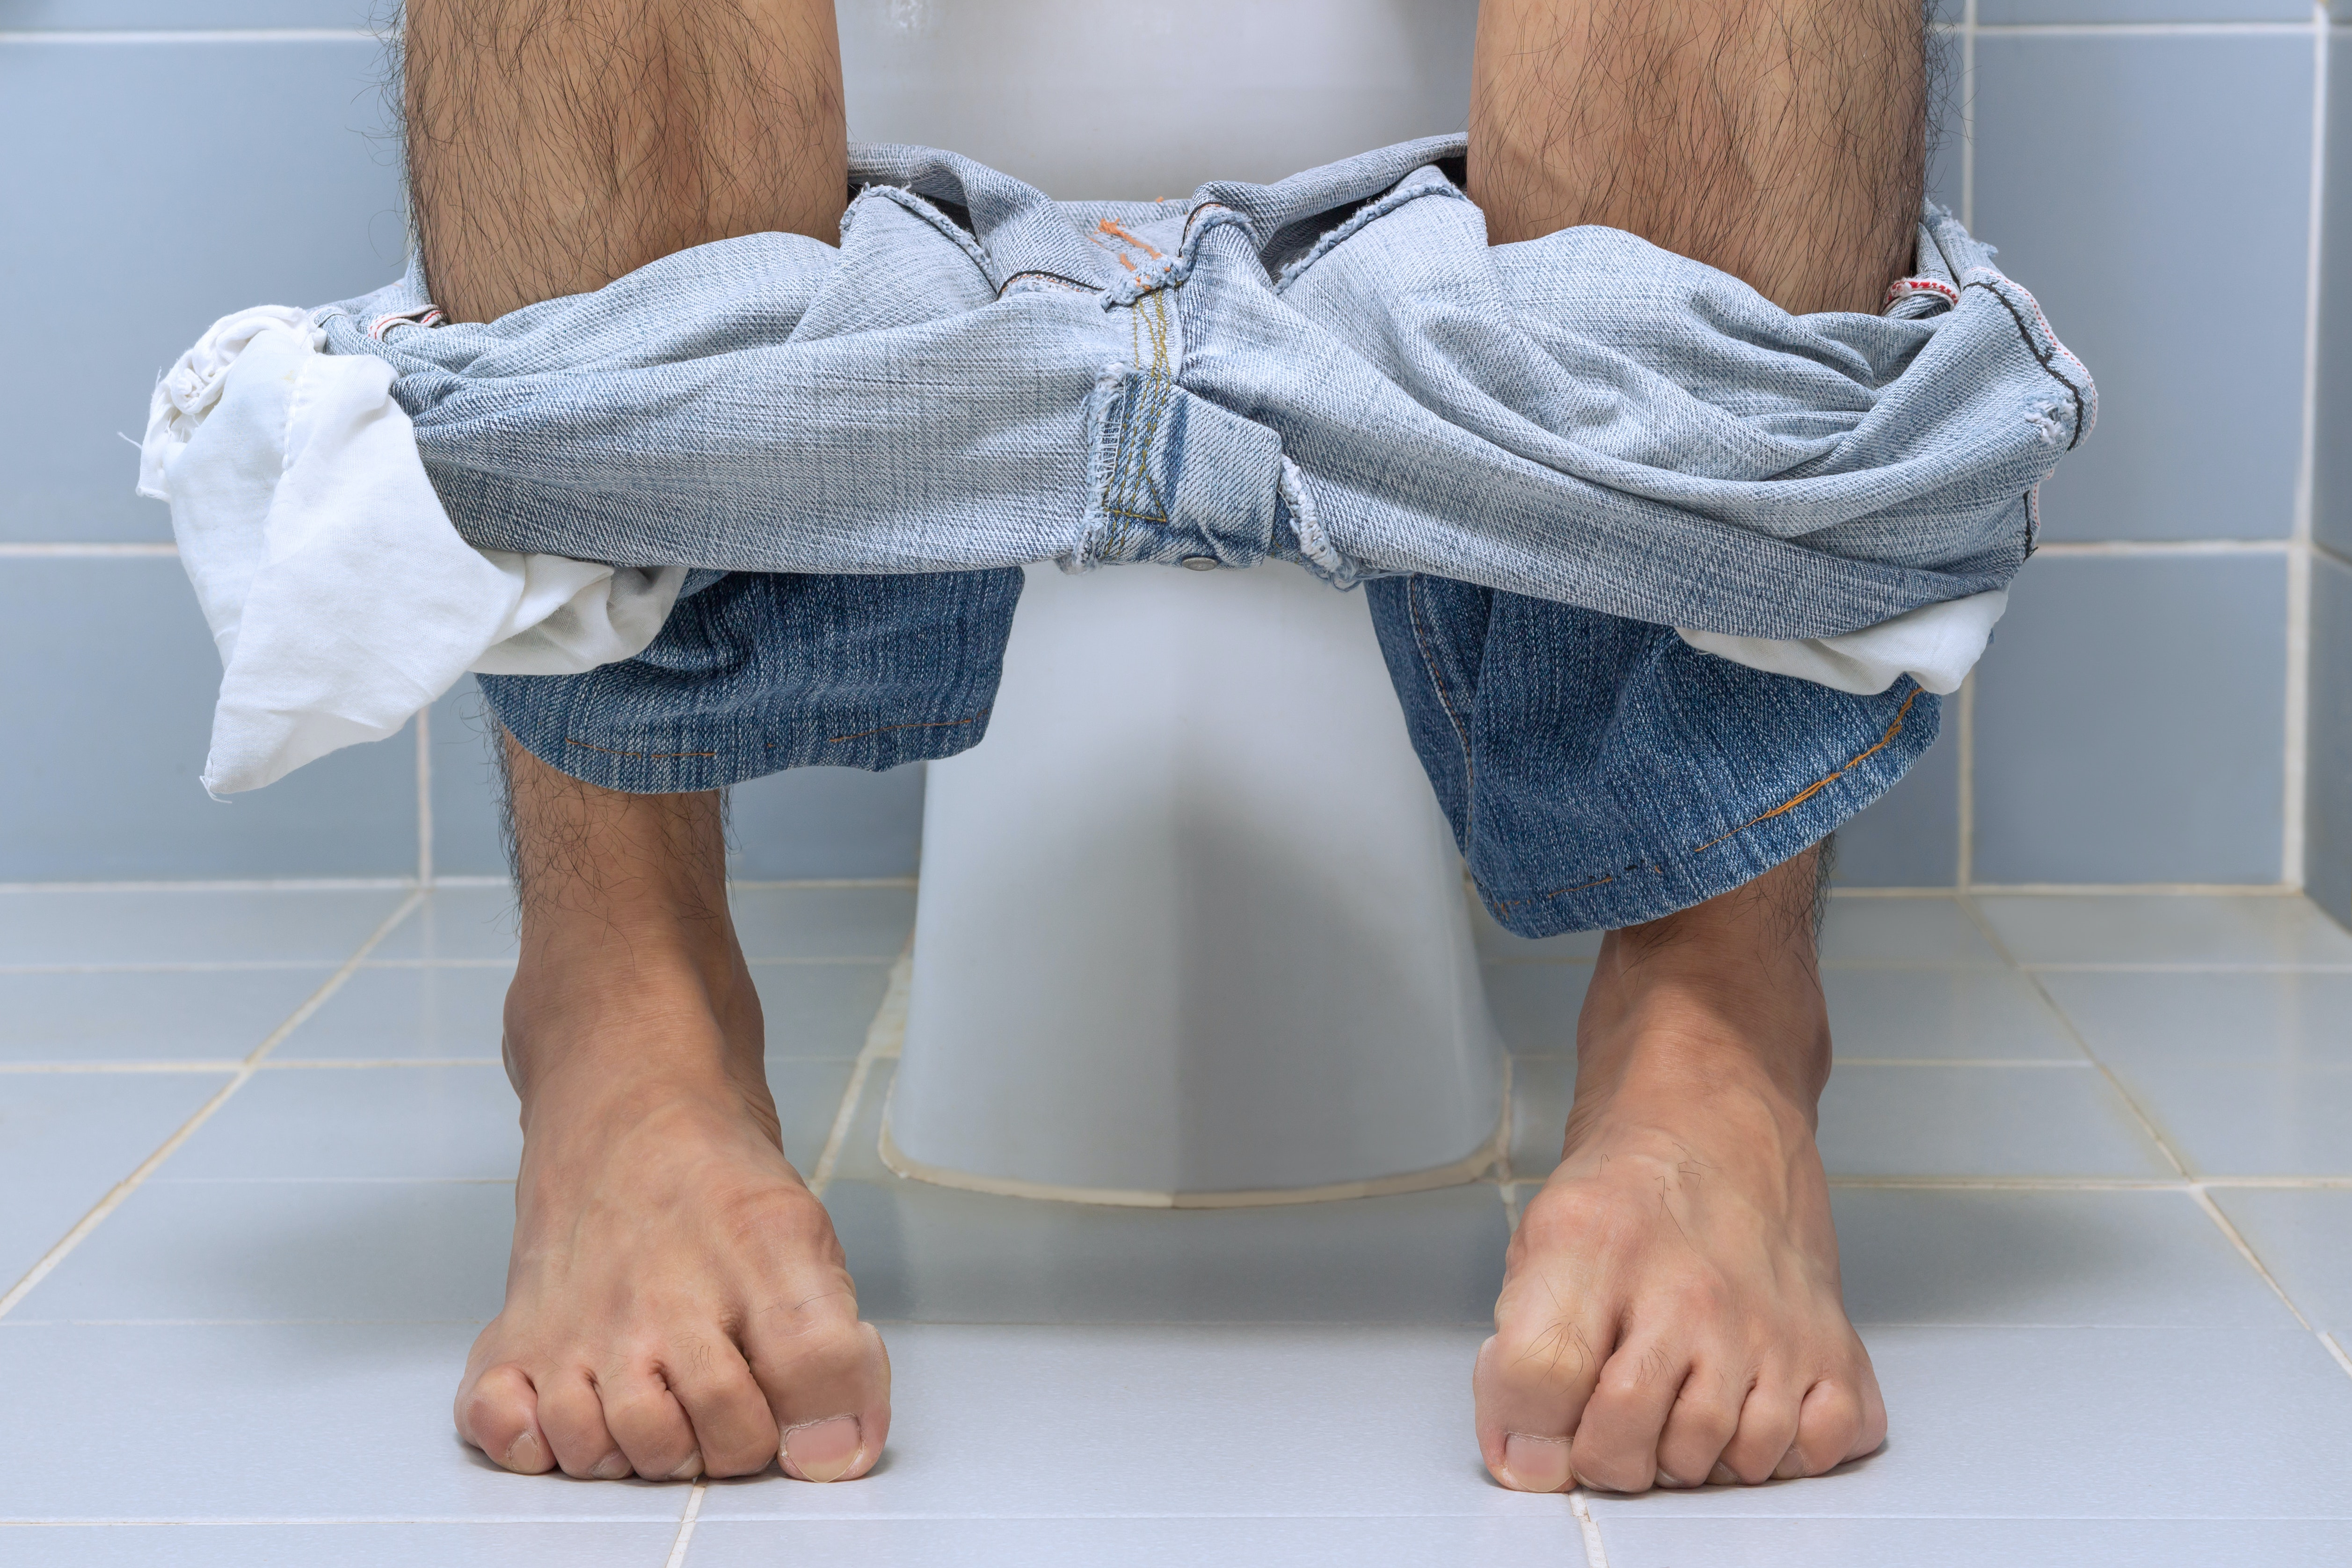 Diarrhea with blood. Causes and Treatment